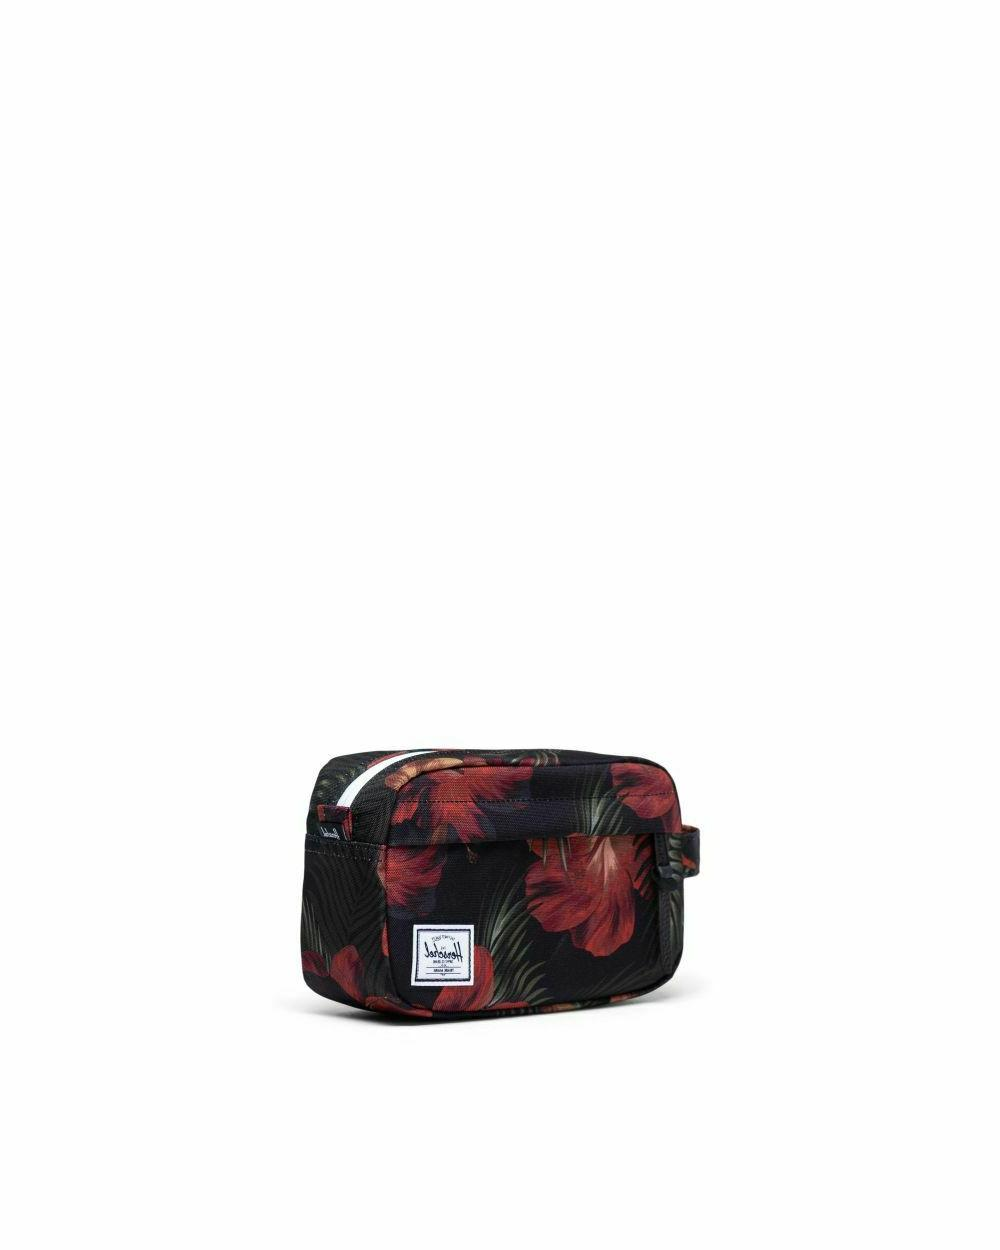 NWT! Supply CHAPTER Toiletry Kit